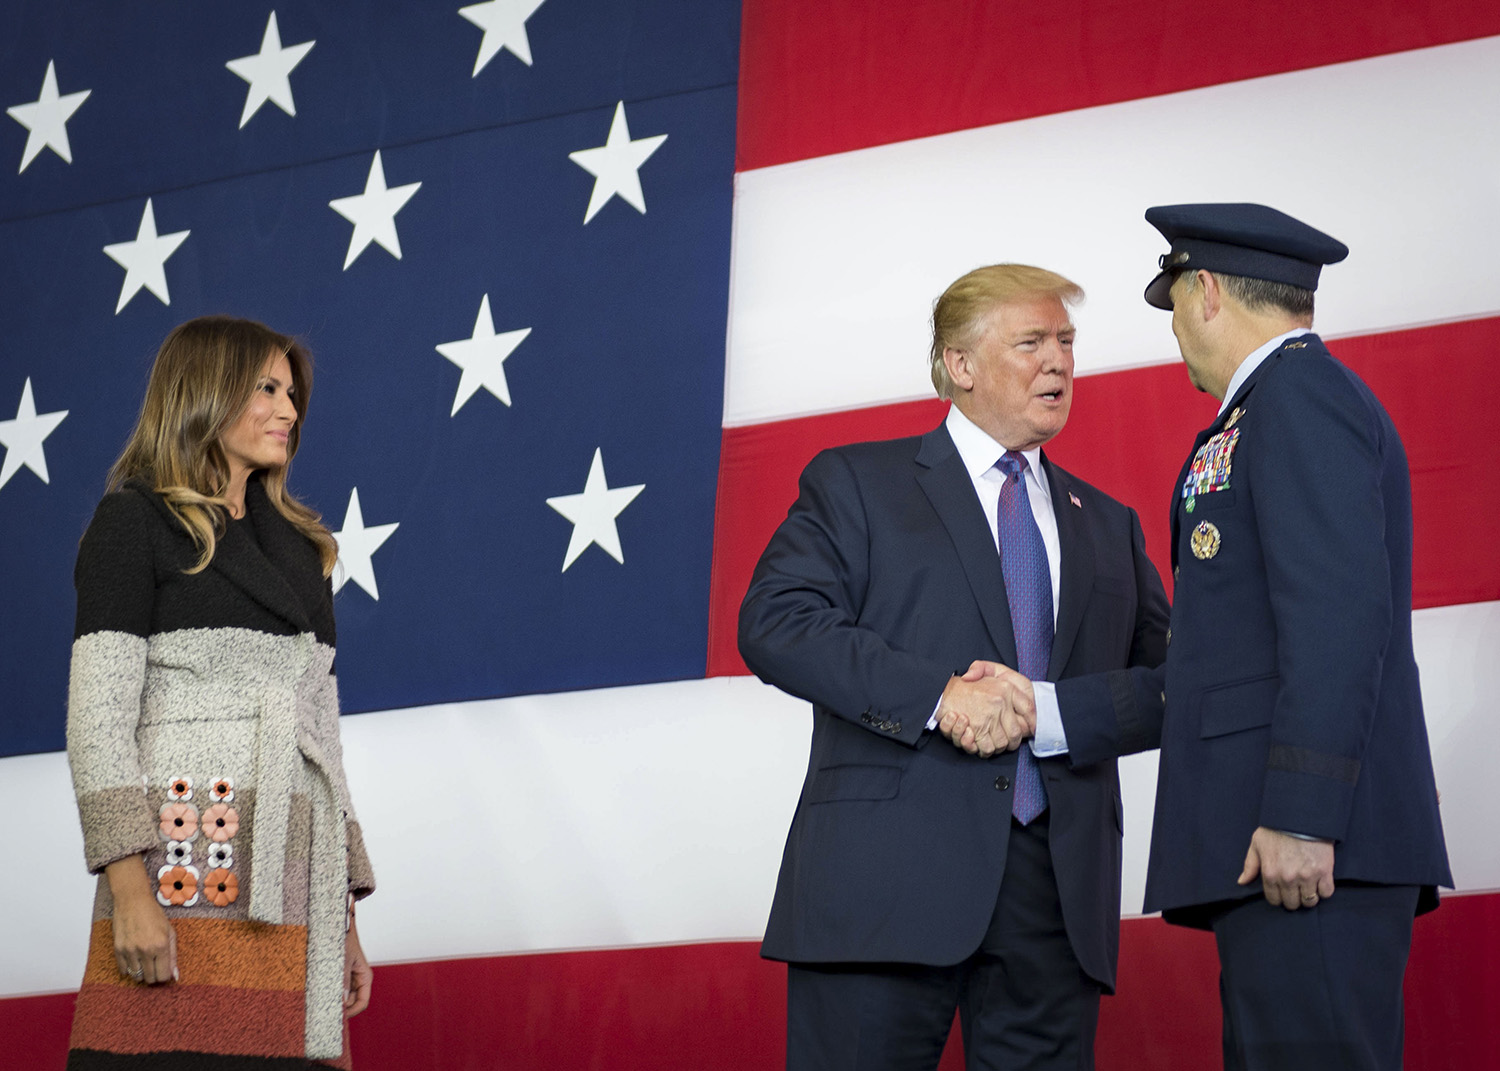 Trump visits Yokota Air Base, Japan. Pres. Donald J. Trump greets Lt Gen Jerry P. Martinez, US Forces Japan and 5th Air Force commander, during a Troop Talk, 5 November 2017, at Yokota Air Base, Japan. During his talk, Trump highlighted the importance of the US–Japan alliance in the Indo-Pacific.